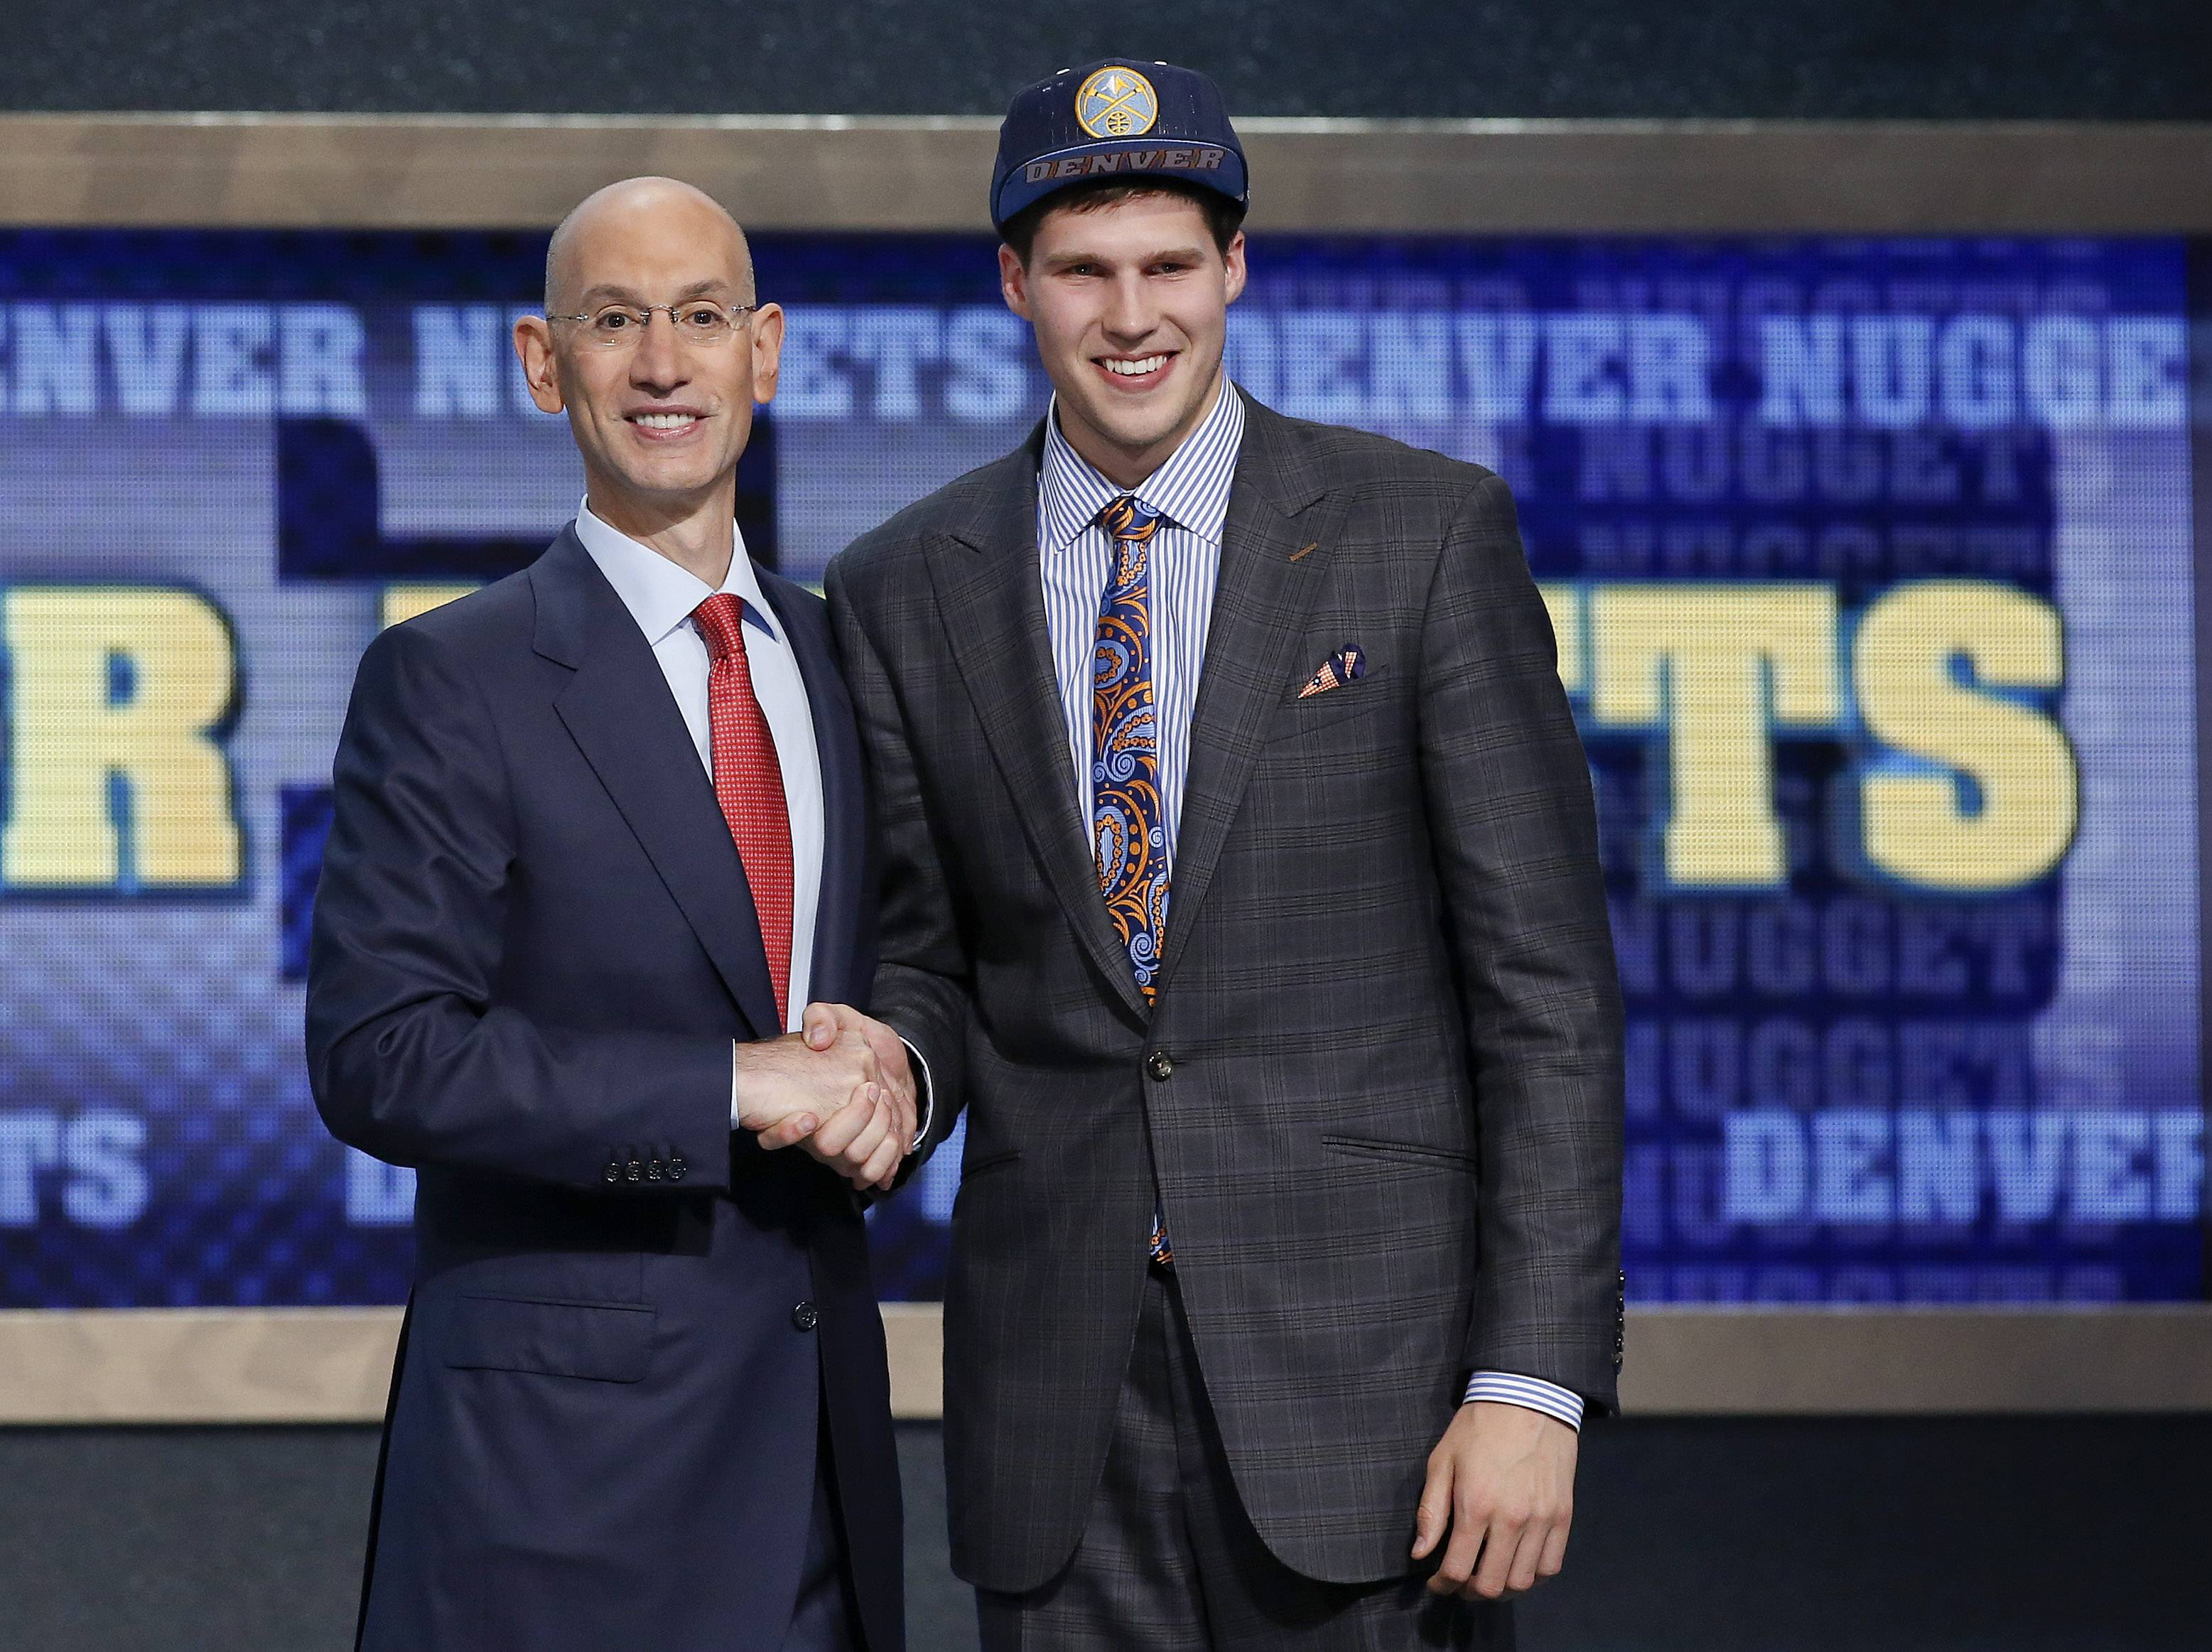 Creighton's Doug McDermott, right, poses for a photo with NBA Commissioner Adam Silver after being selected 11th overall by the Denver Nuggets during the 2014 NBA draft, Thursday, June 26, 2014, in New York. (AP Photo/Kathy Willens)